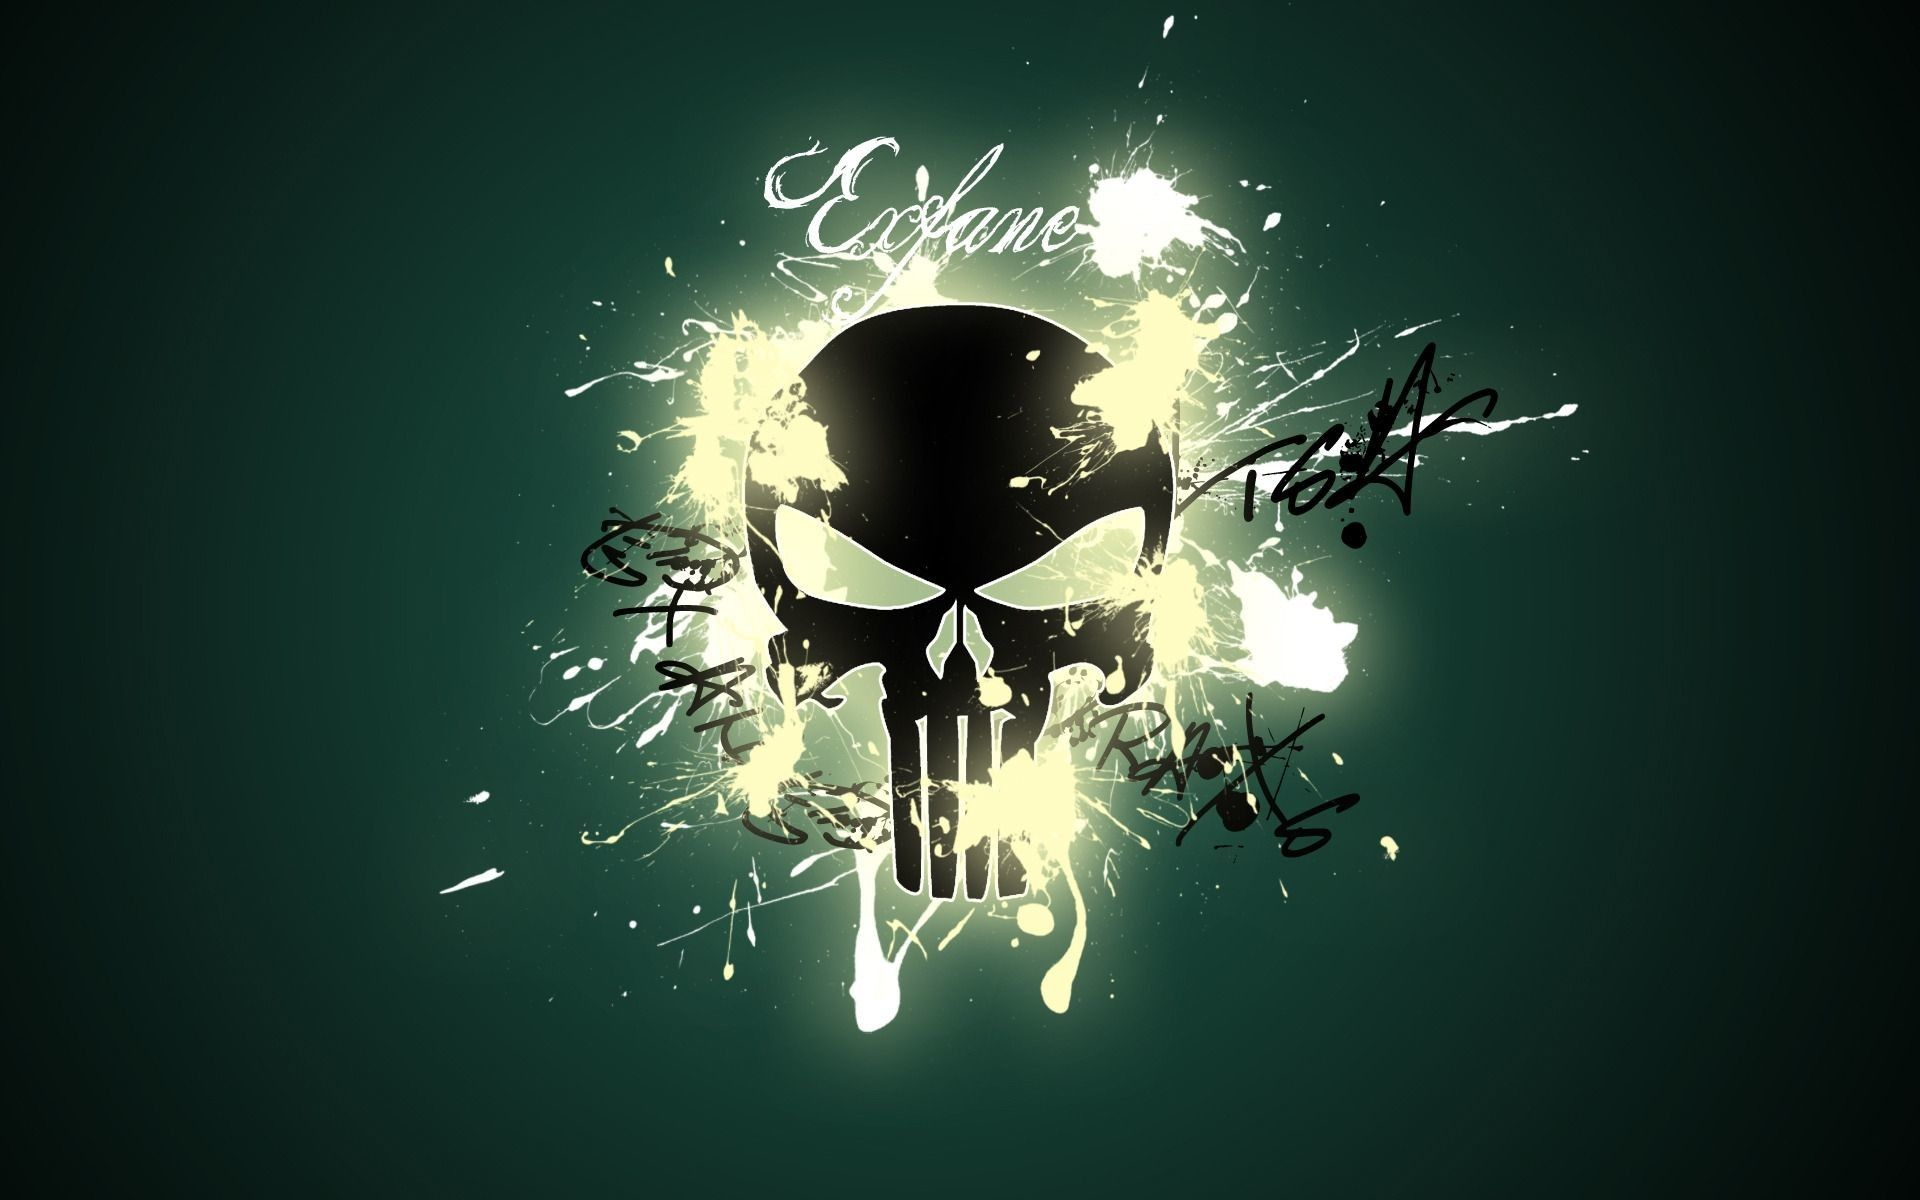 72 Punisher Hd Wallpapers On Wallpaperplay Cool Backgrounds Wallpapers Skull Wallpaper Drawing Wallpaper